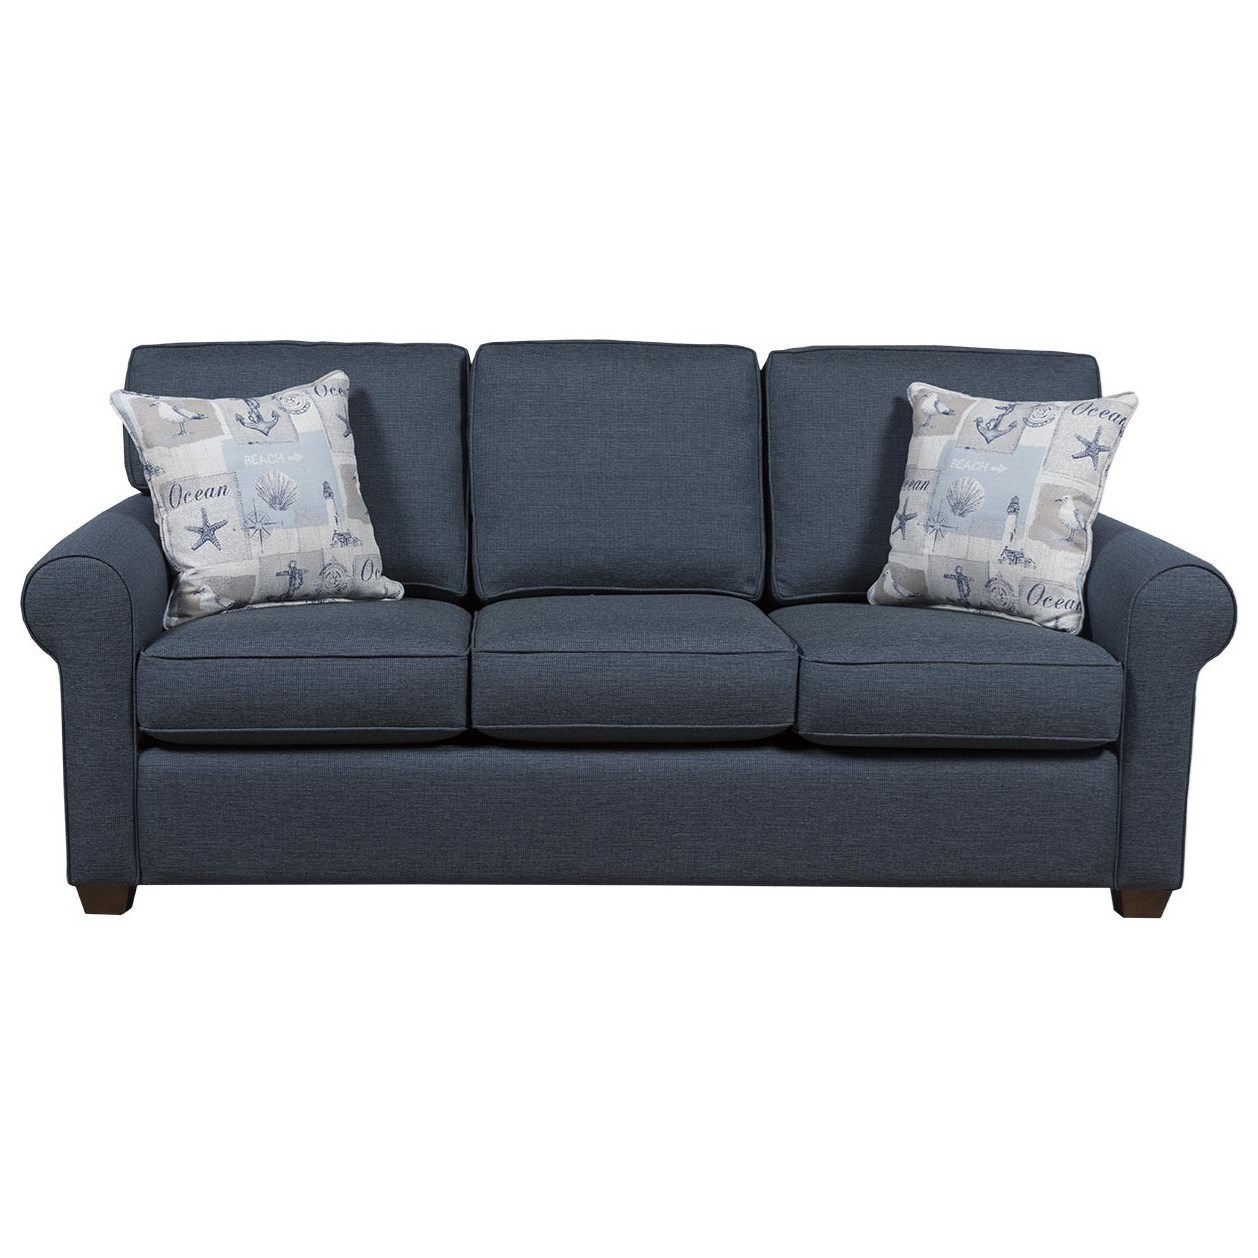 912 Sofa by Capris Furniture at Esprit Decor Home Furnishings